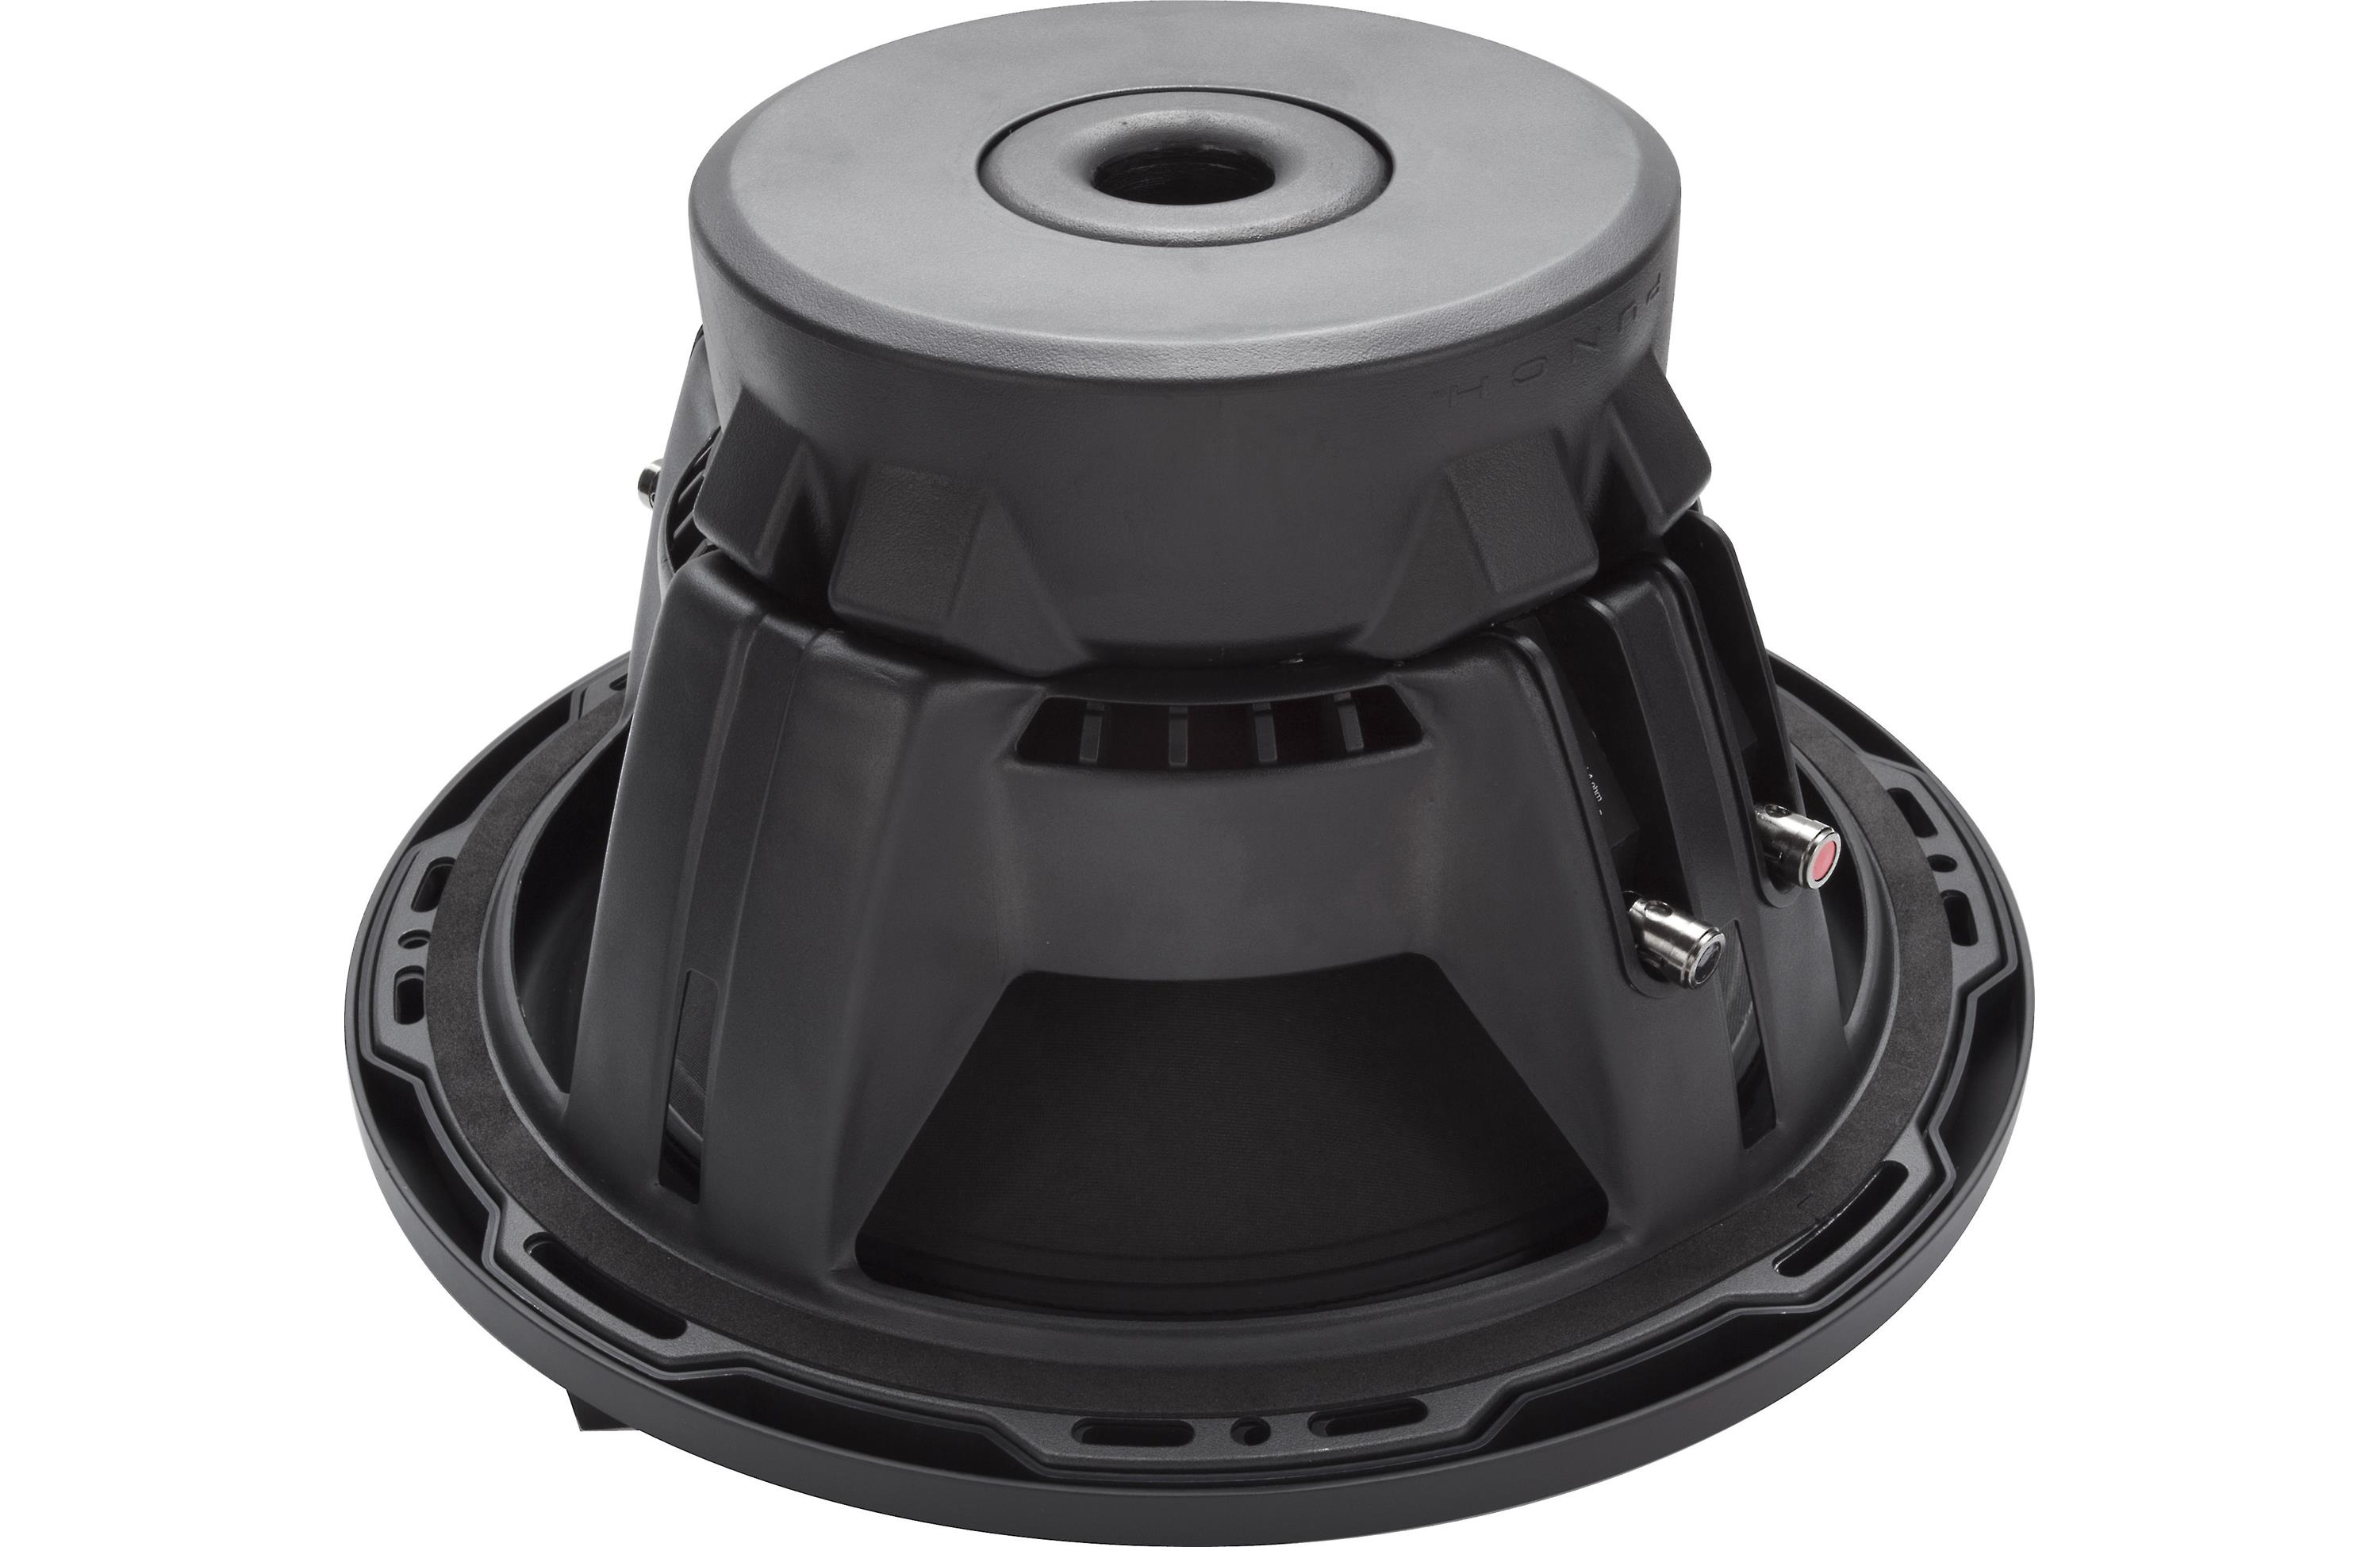 Rockford Fosgate Punch Power Dvc 12 Inch Subwoofers On A Manual Guide